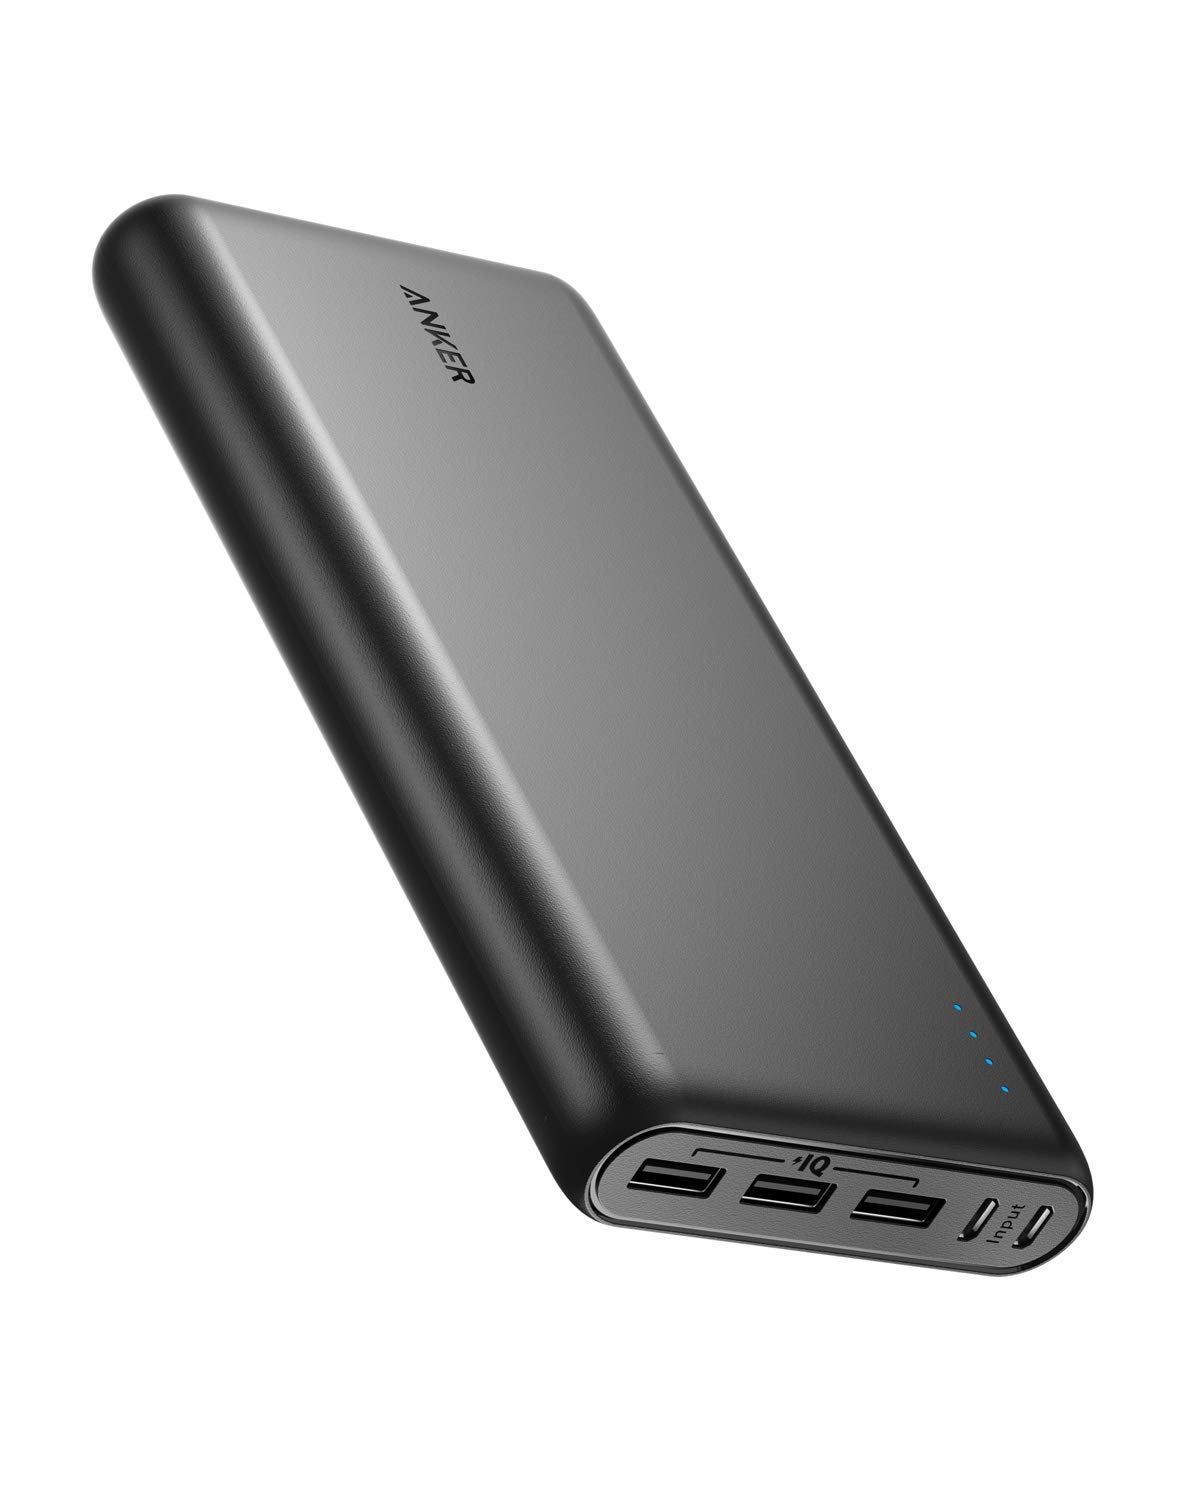 Anker PowerCore 26800 Portable Charger, 26800mAh External Battery